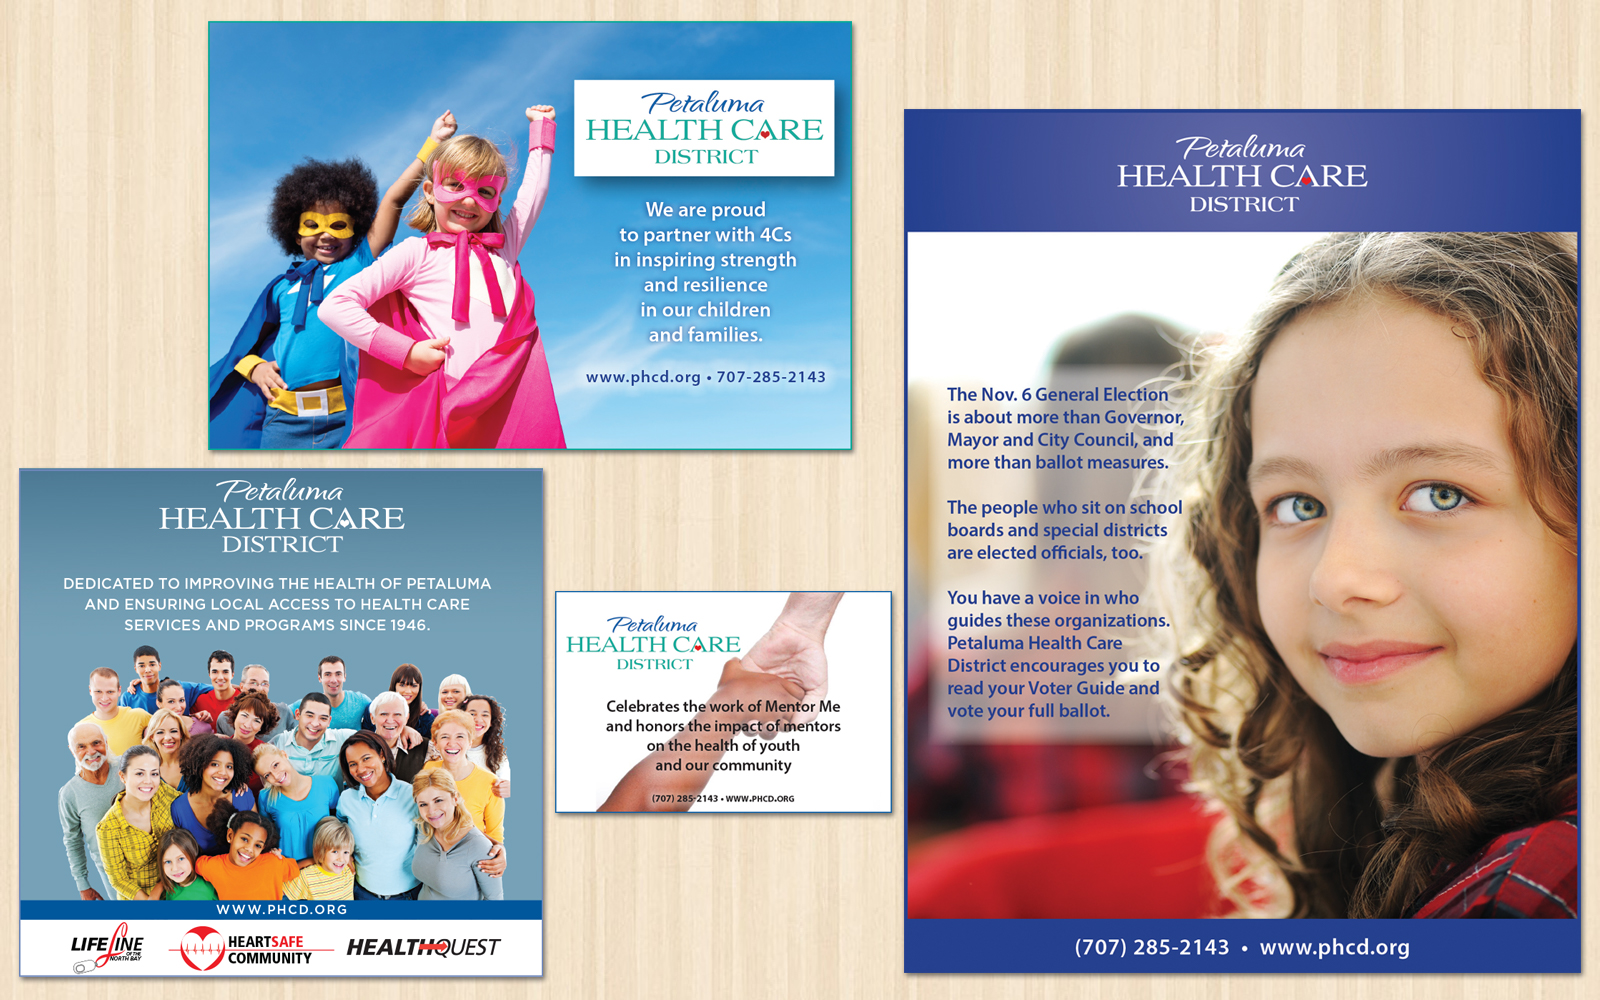 Petaluma Health Care District Ads